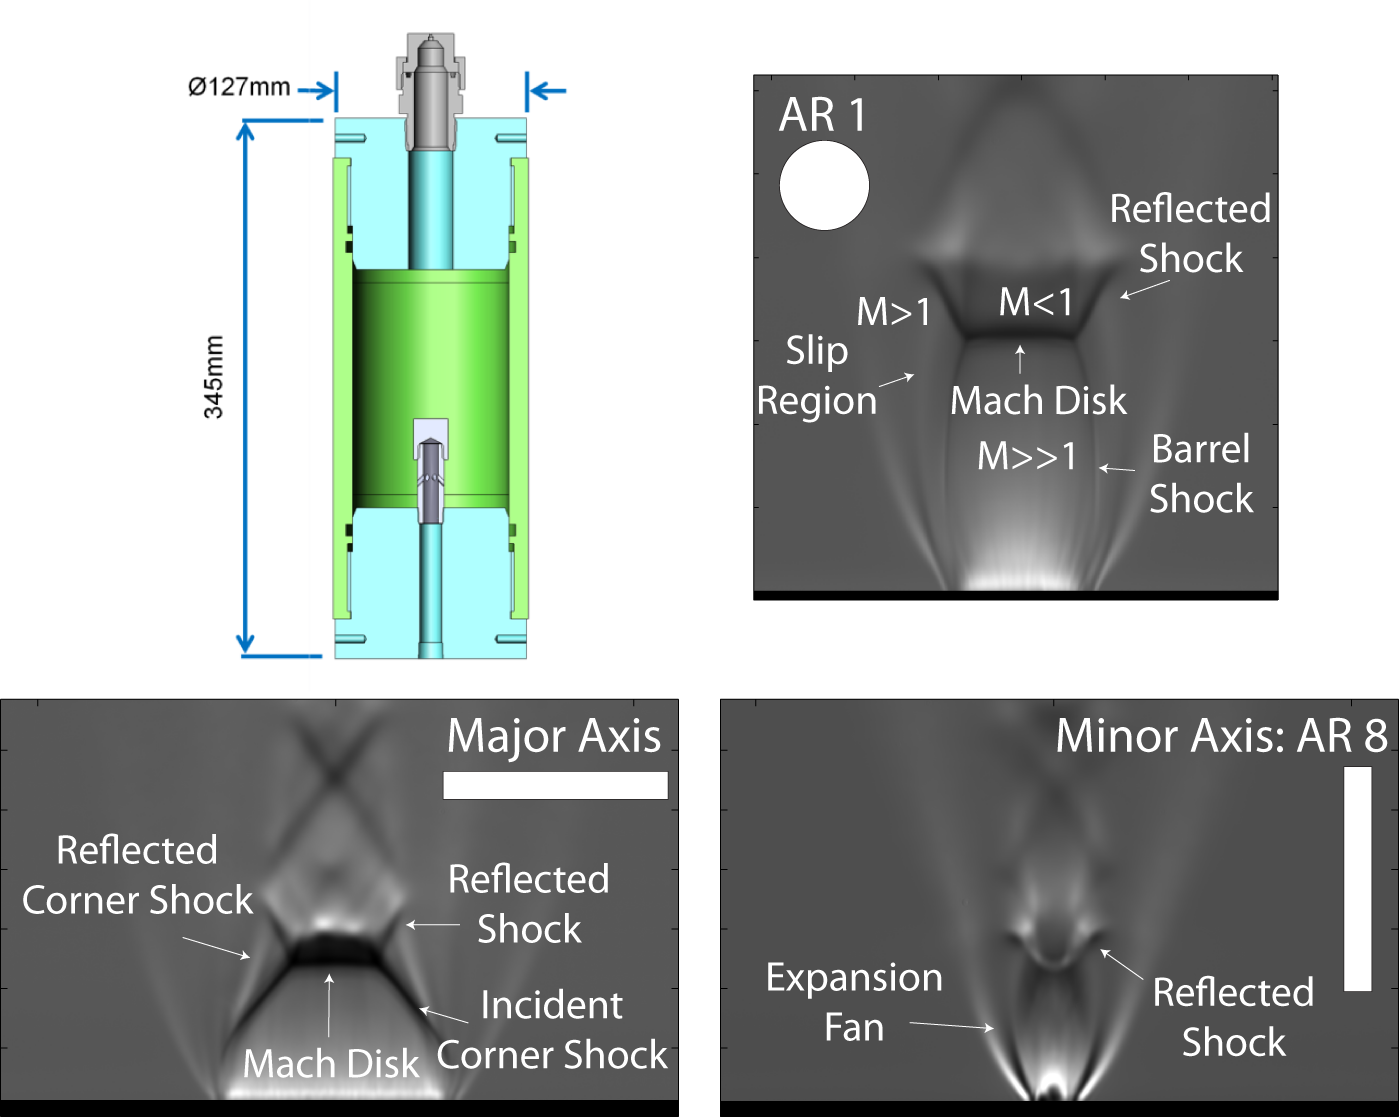 Sectional schematic view of the TCL high-pressure stagnation chamber (far left) along with corresponding mean schlieren images of the shock structure from an underexpanded hydrogen jet (10:1 pressure ratio) with axisymmetric (top) and rectangular slot nozzles (aspect ratio = 8) along the major (lower left) and minor axes (lower right).